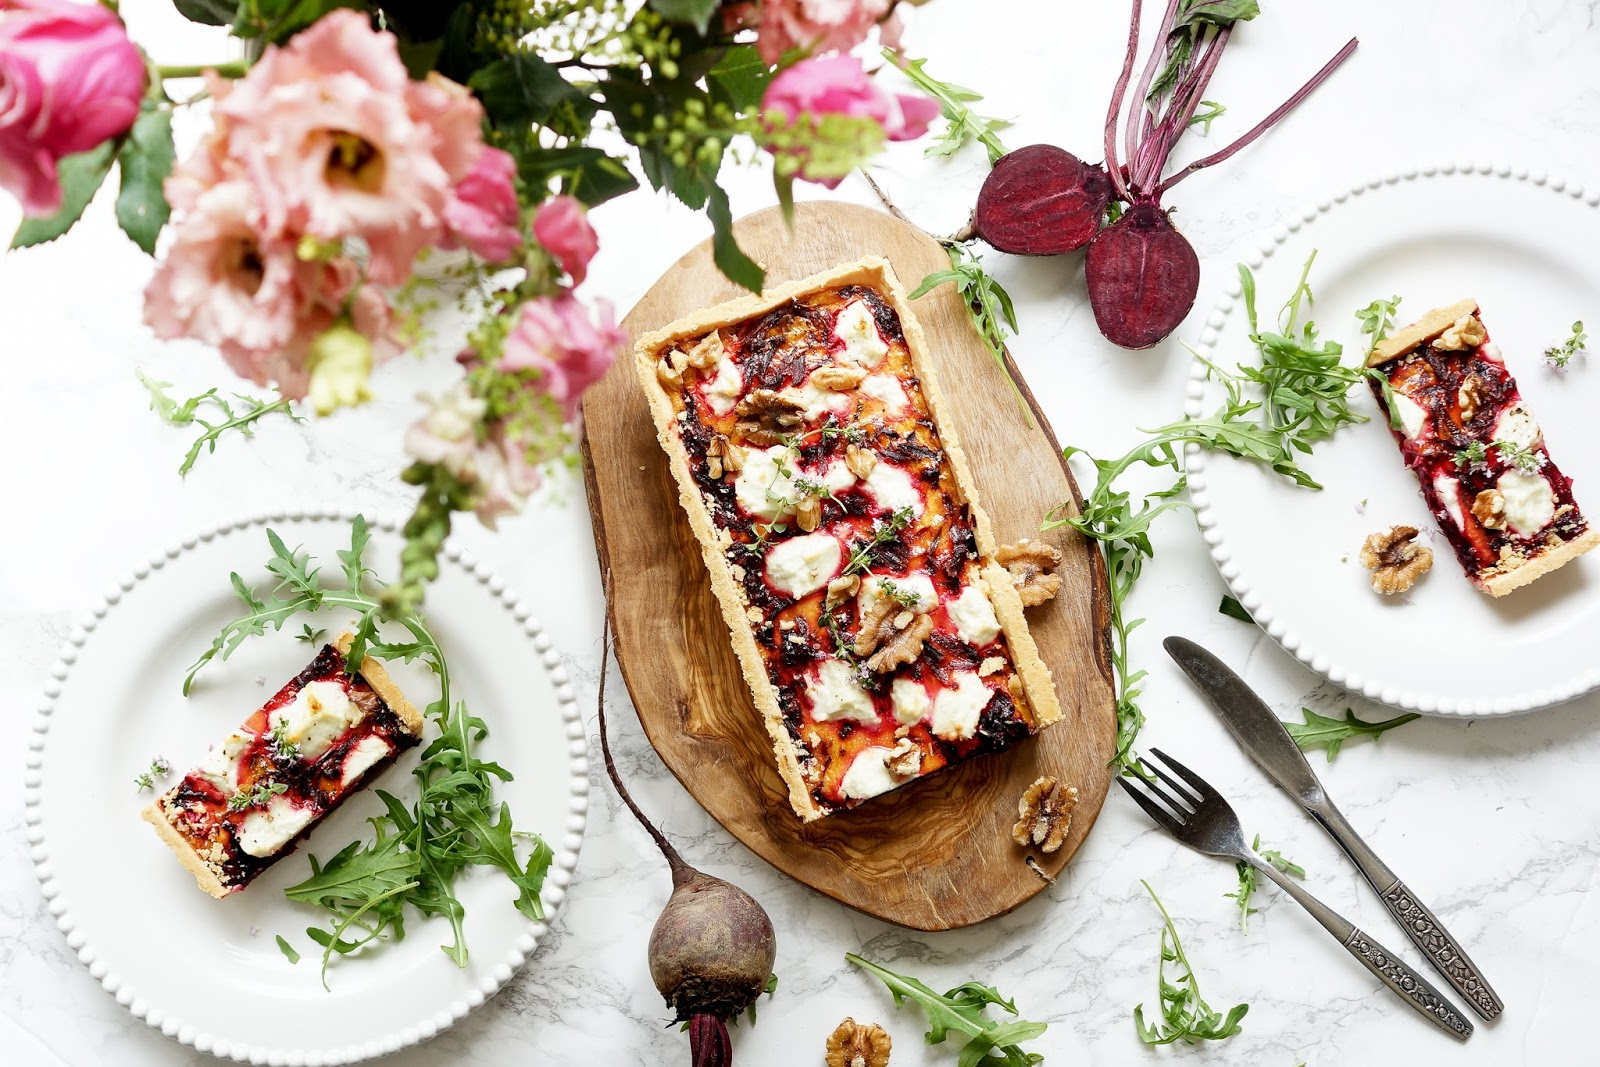 lifestyle-beauty-flatlay-photography-beetroot-tart-recipe